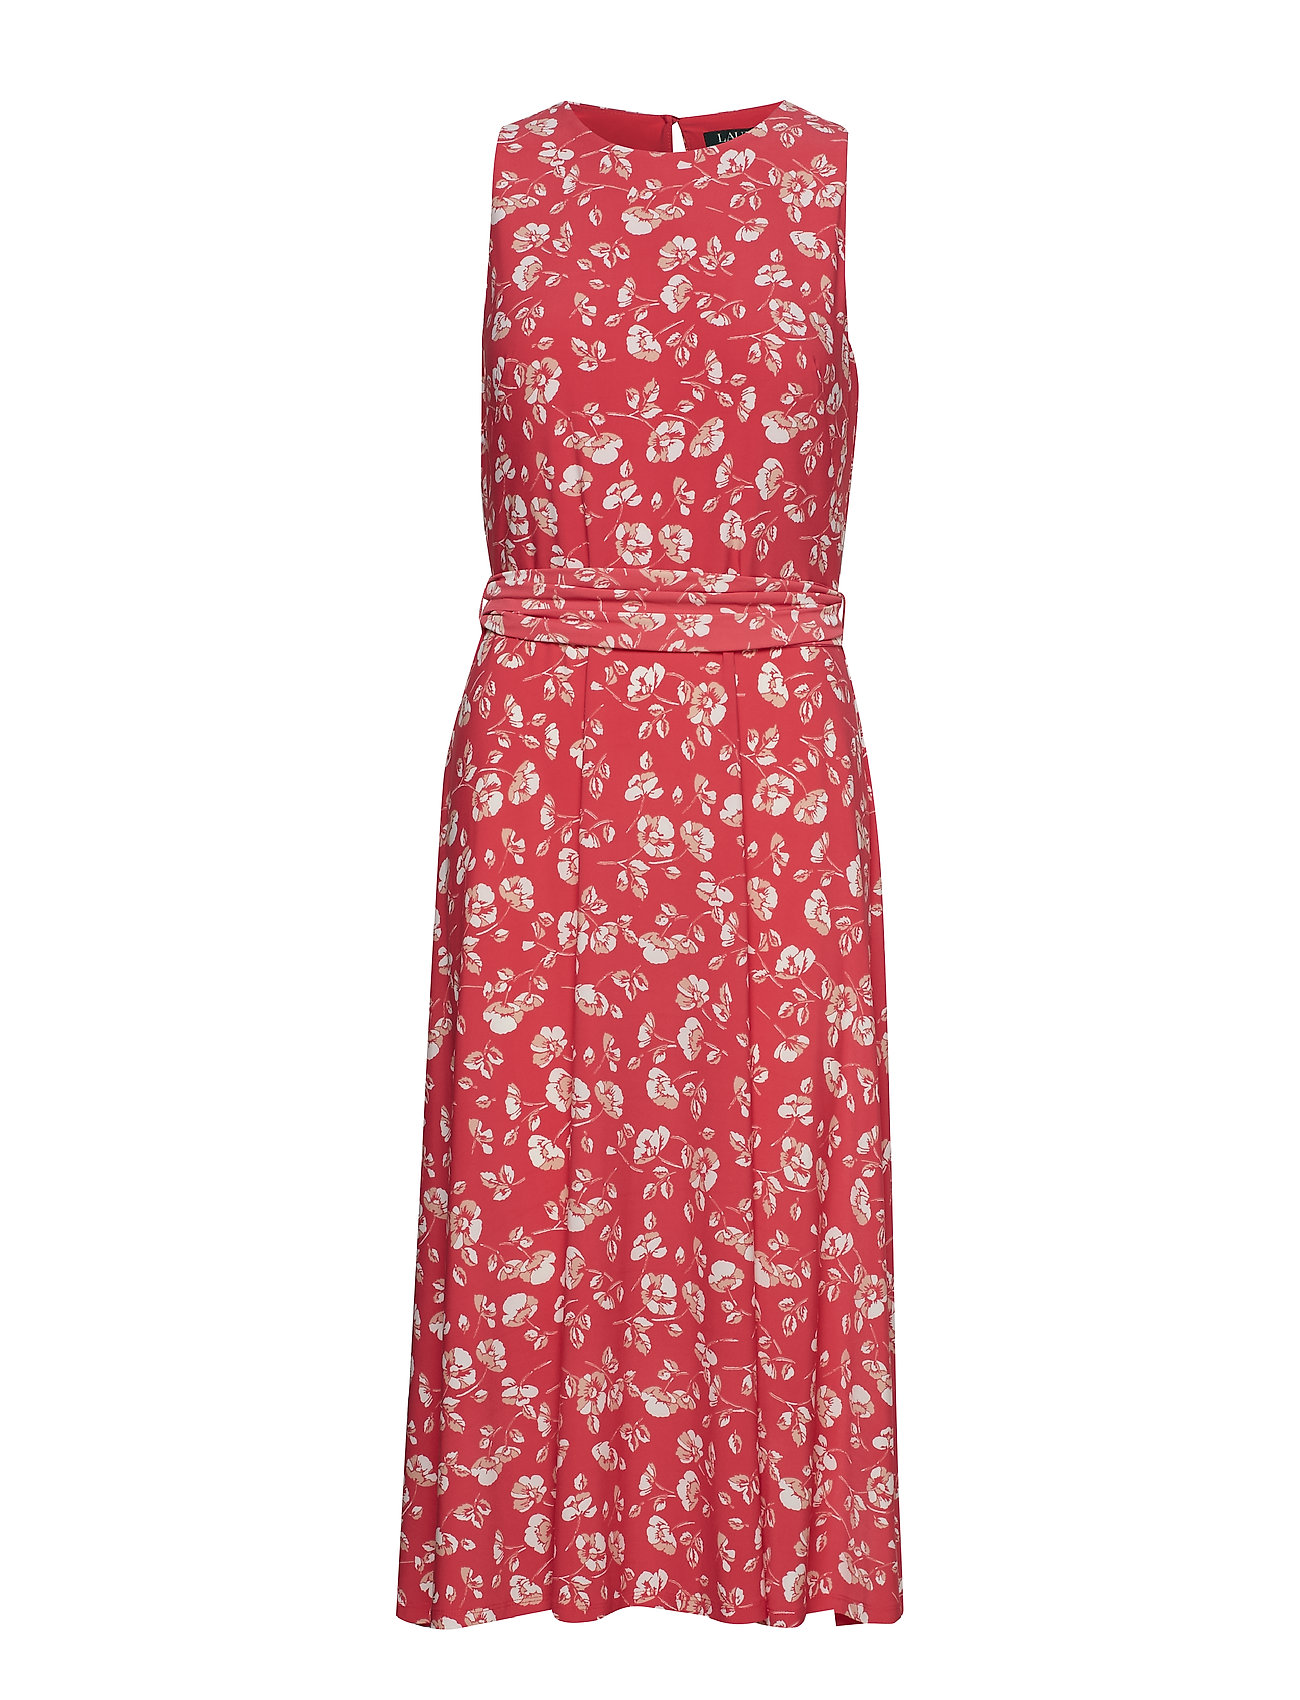 Lauren Ralph Lauren Floral Fit-and-Flare Dress